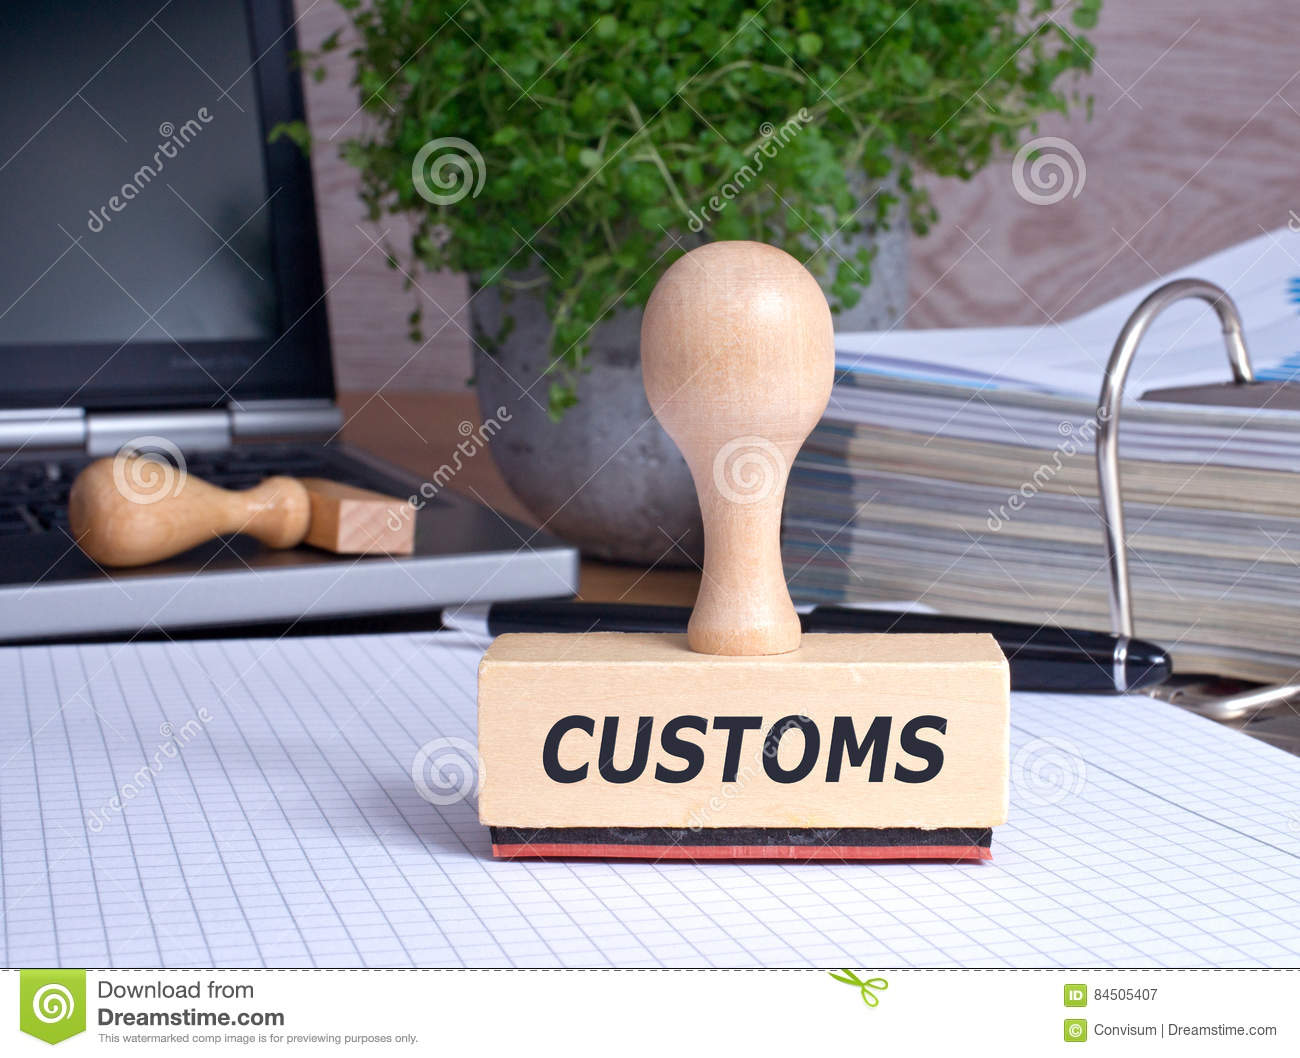 Customs Stamp on desk in the Office